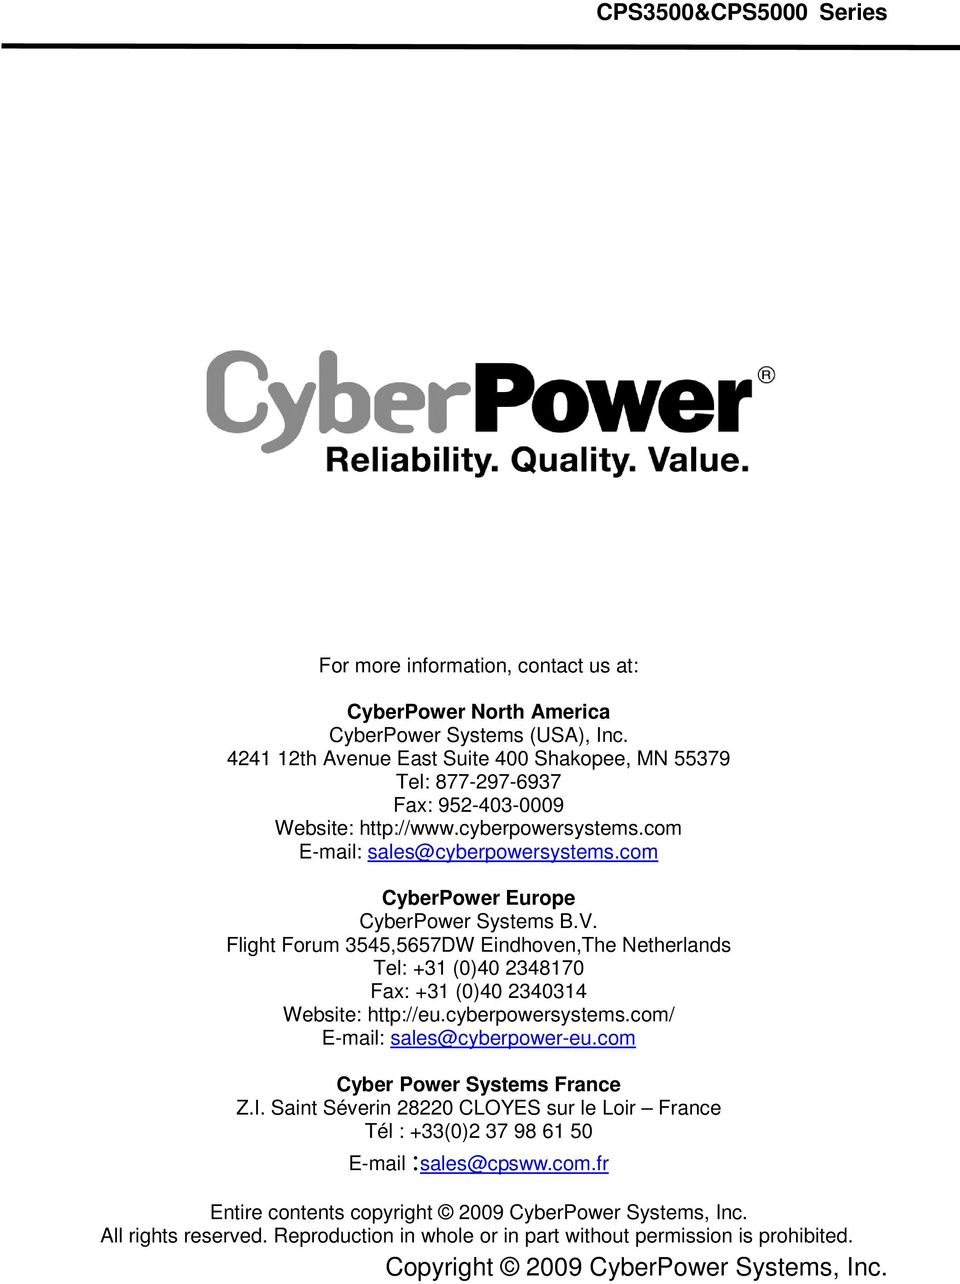 com CyberPower Europe CyberPower Systems B.V. Flight Forum 3545,5657DW Eindhoven,The Netherlands Tel: +31 (0)40 2348170 Fax: +31 (0)40 2340314 Website: http://eu.cyberpowersystems.